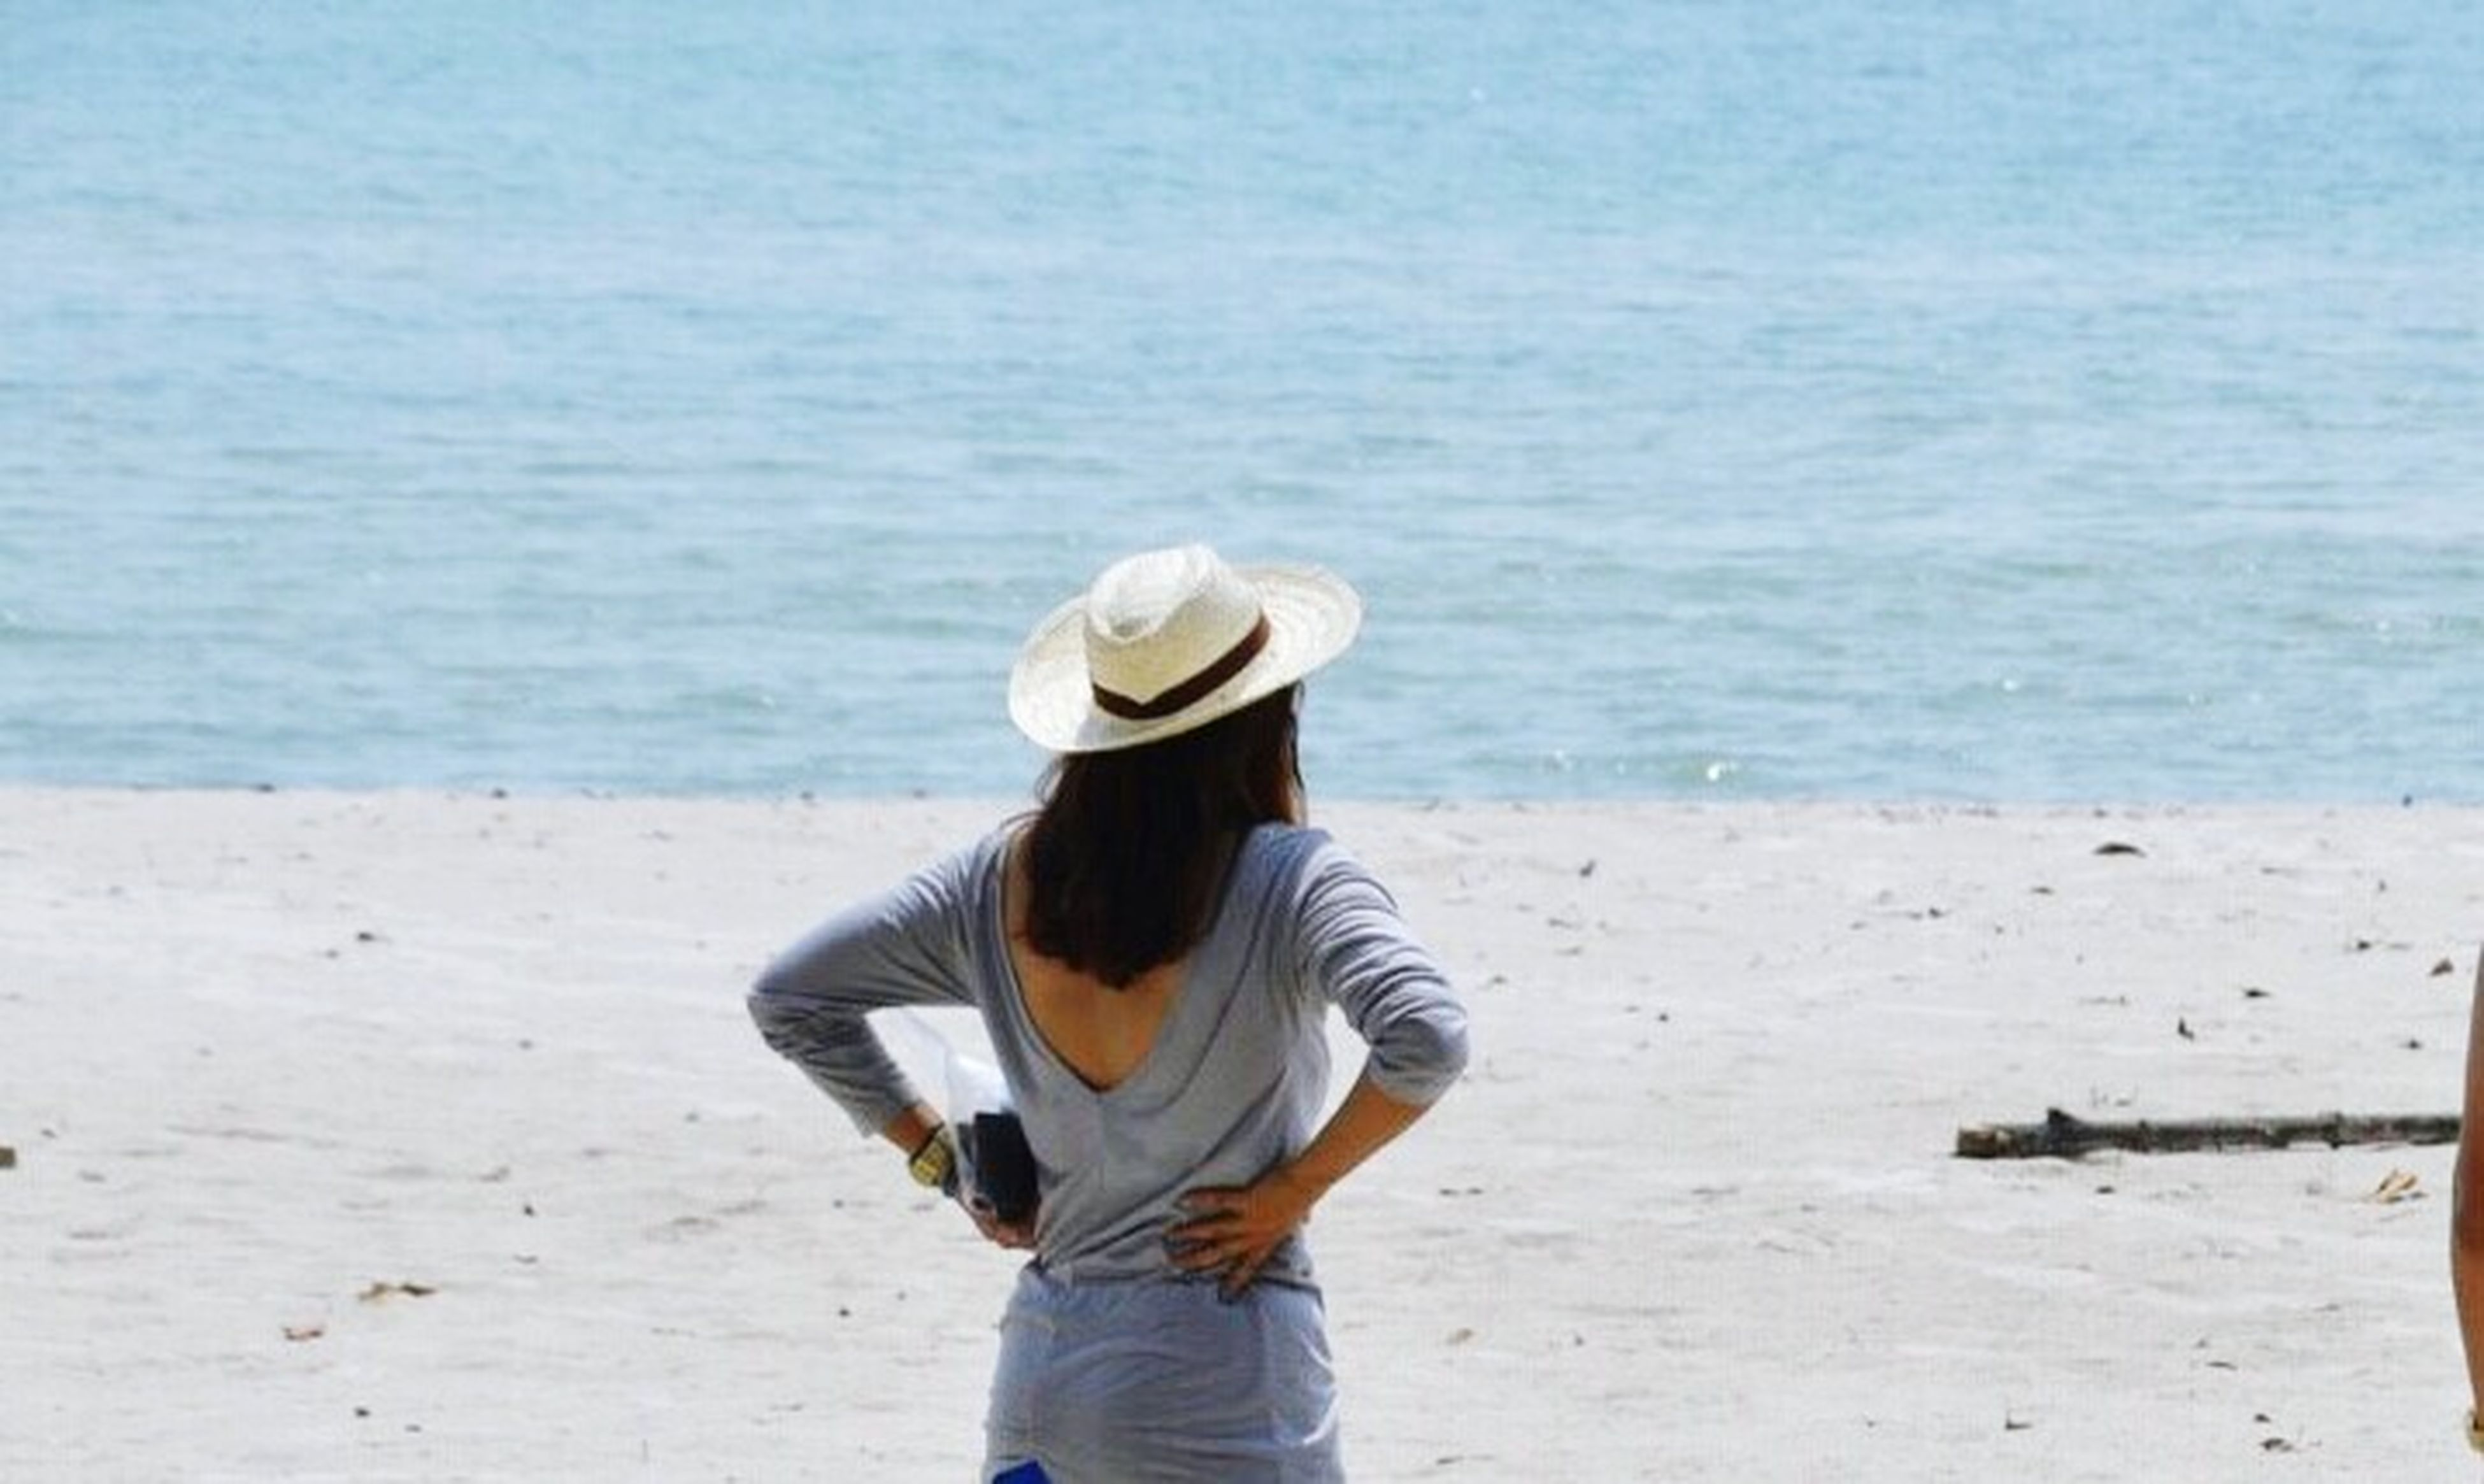 beach, sea, water, lifestyles, shore, rear view, leisure activity, casual clothing, sand, horizon over water, standing, three quarter length, tranquility, vacations, hat, full length, tranquil scene, day